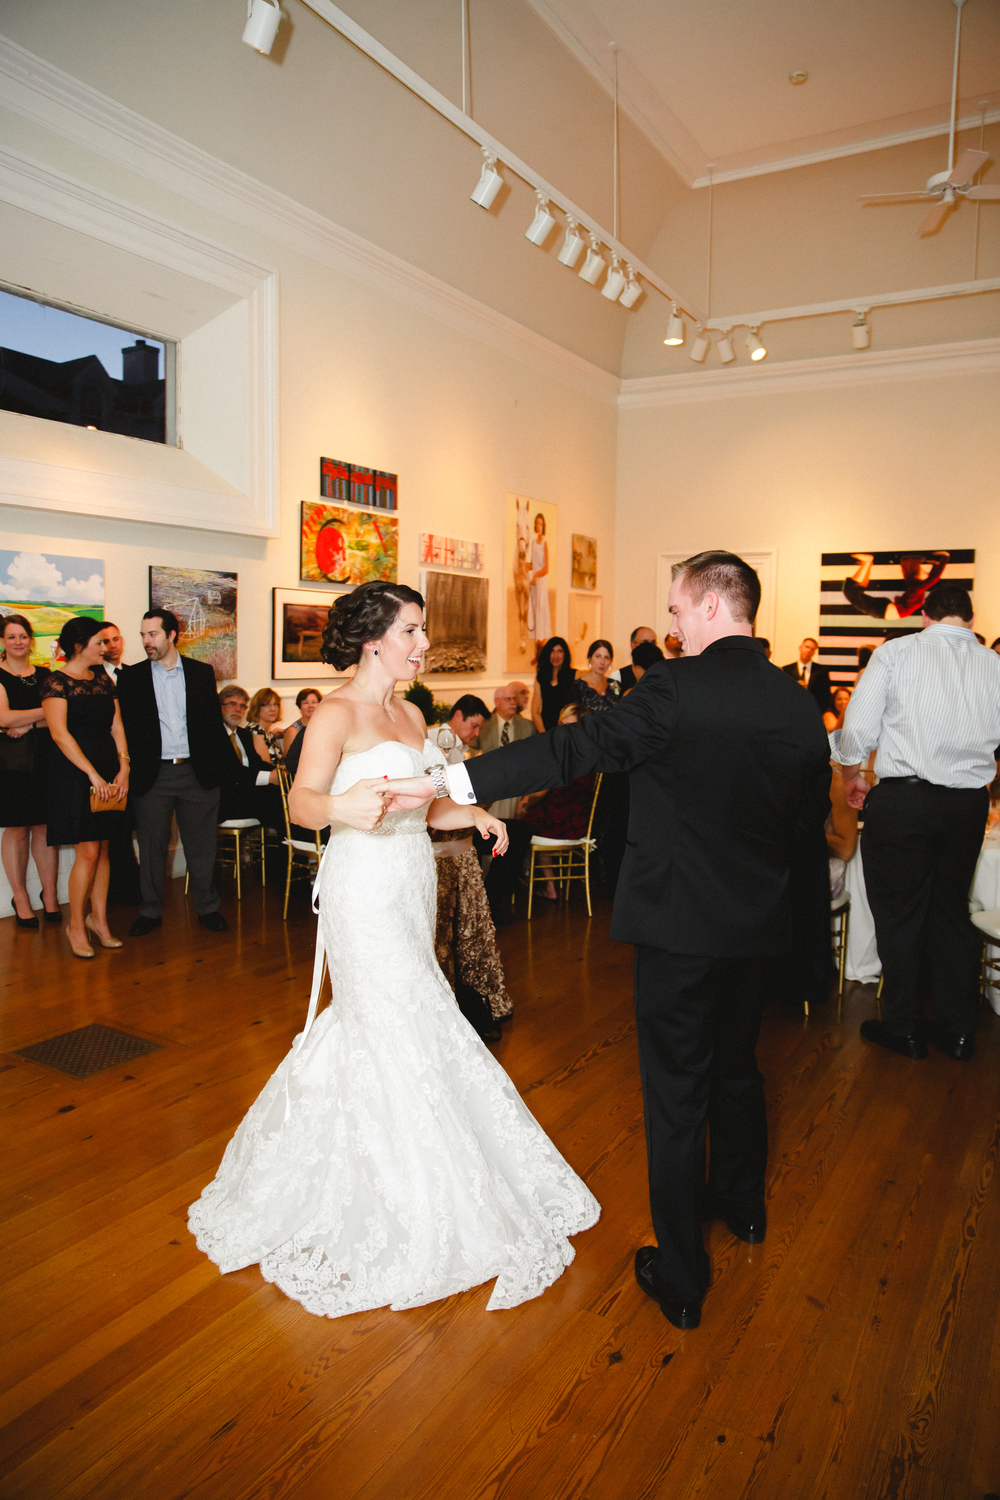 Vness_Photography_Wedding_Photographer_Washington-DC_Fish_Wedding-968.jpg